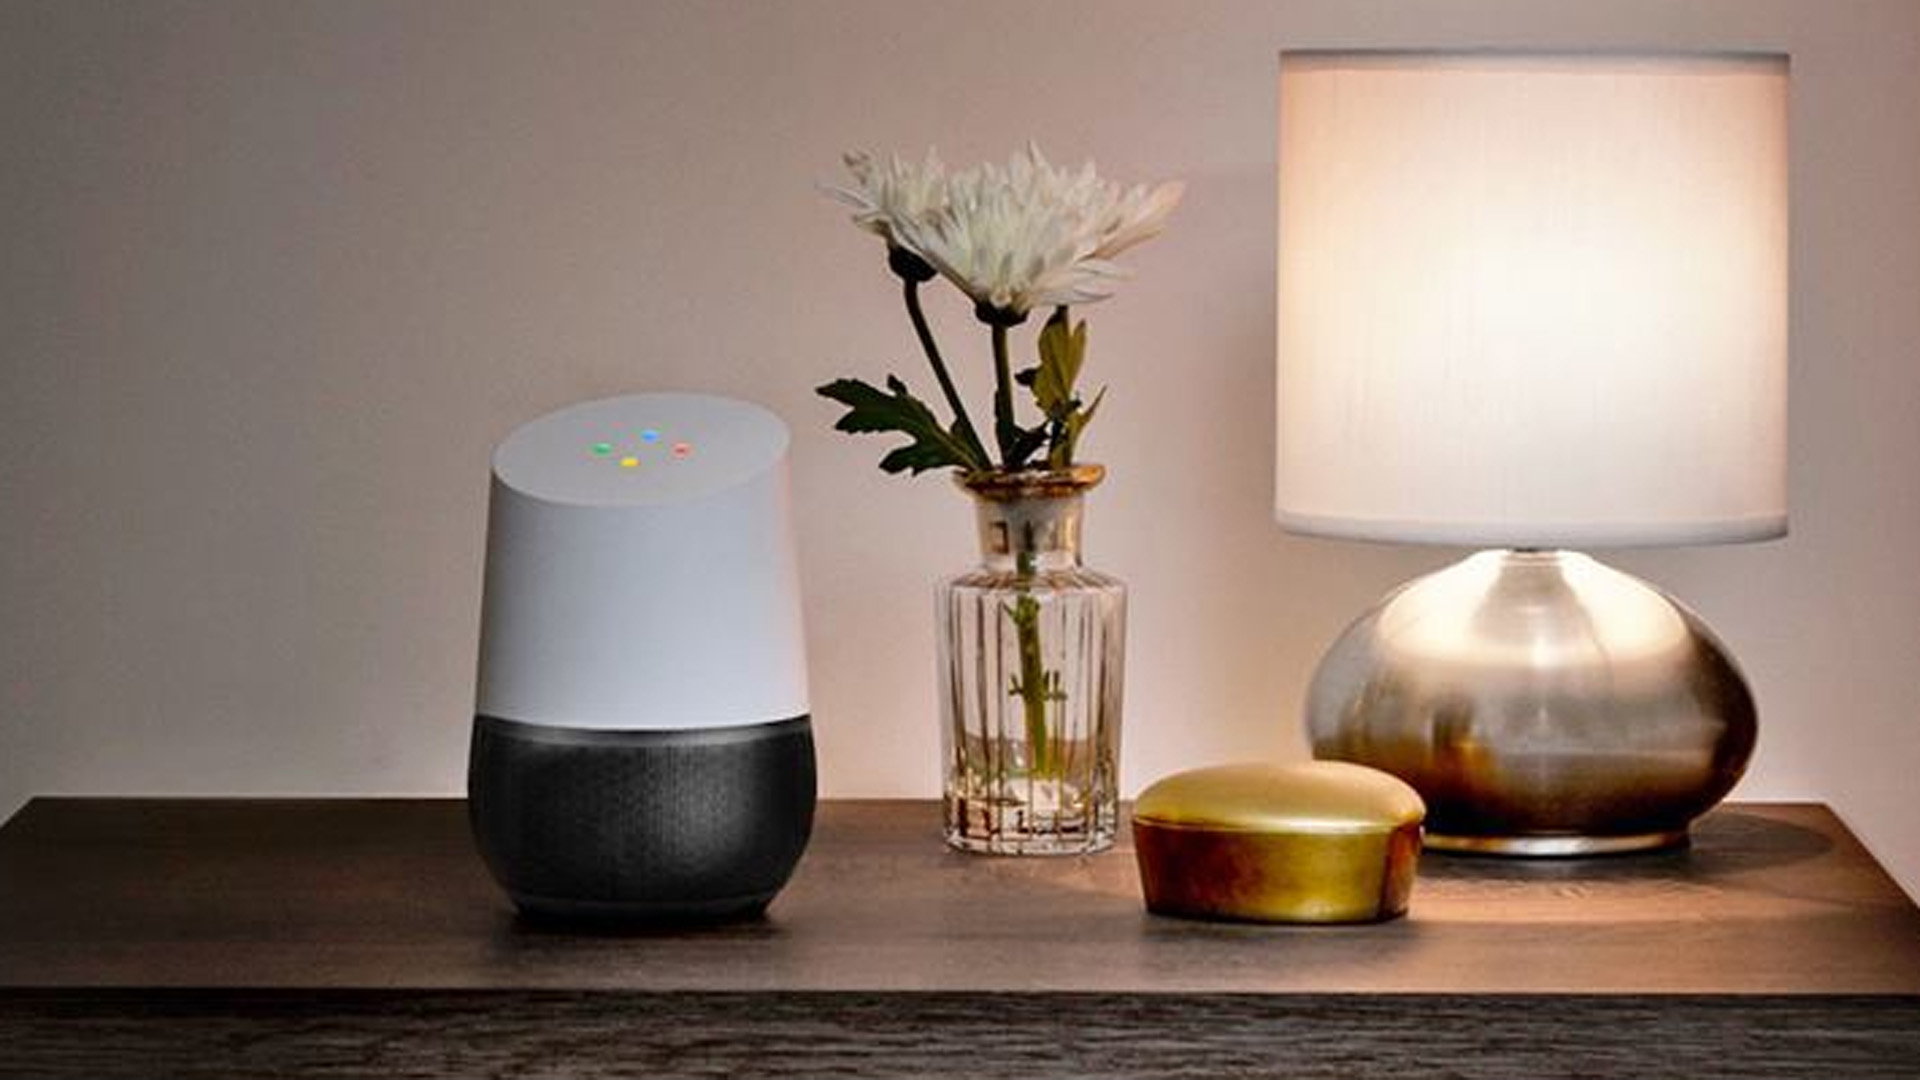 A Google Home smart speaker is visible in this file photo. (Credit: Google)